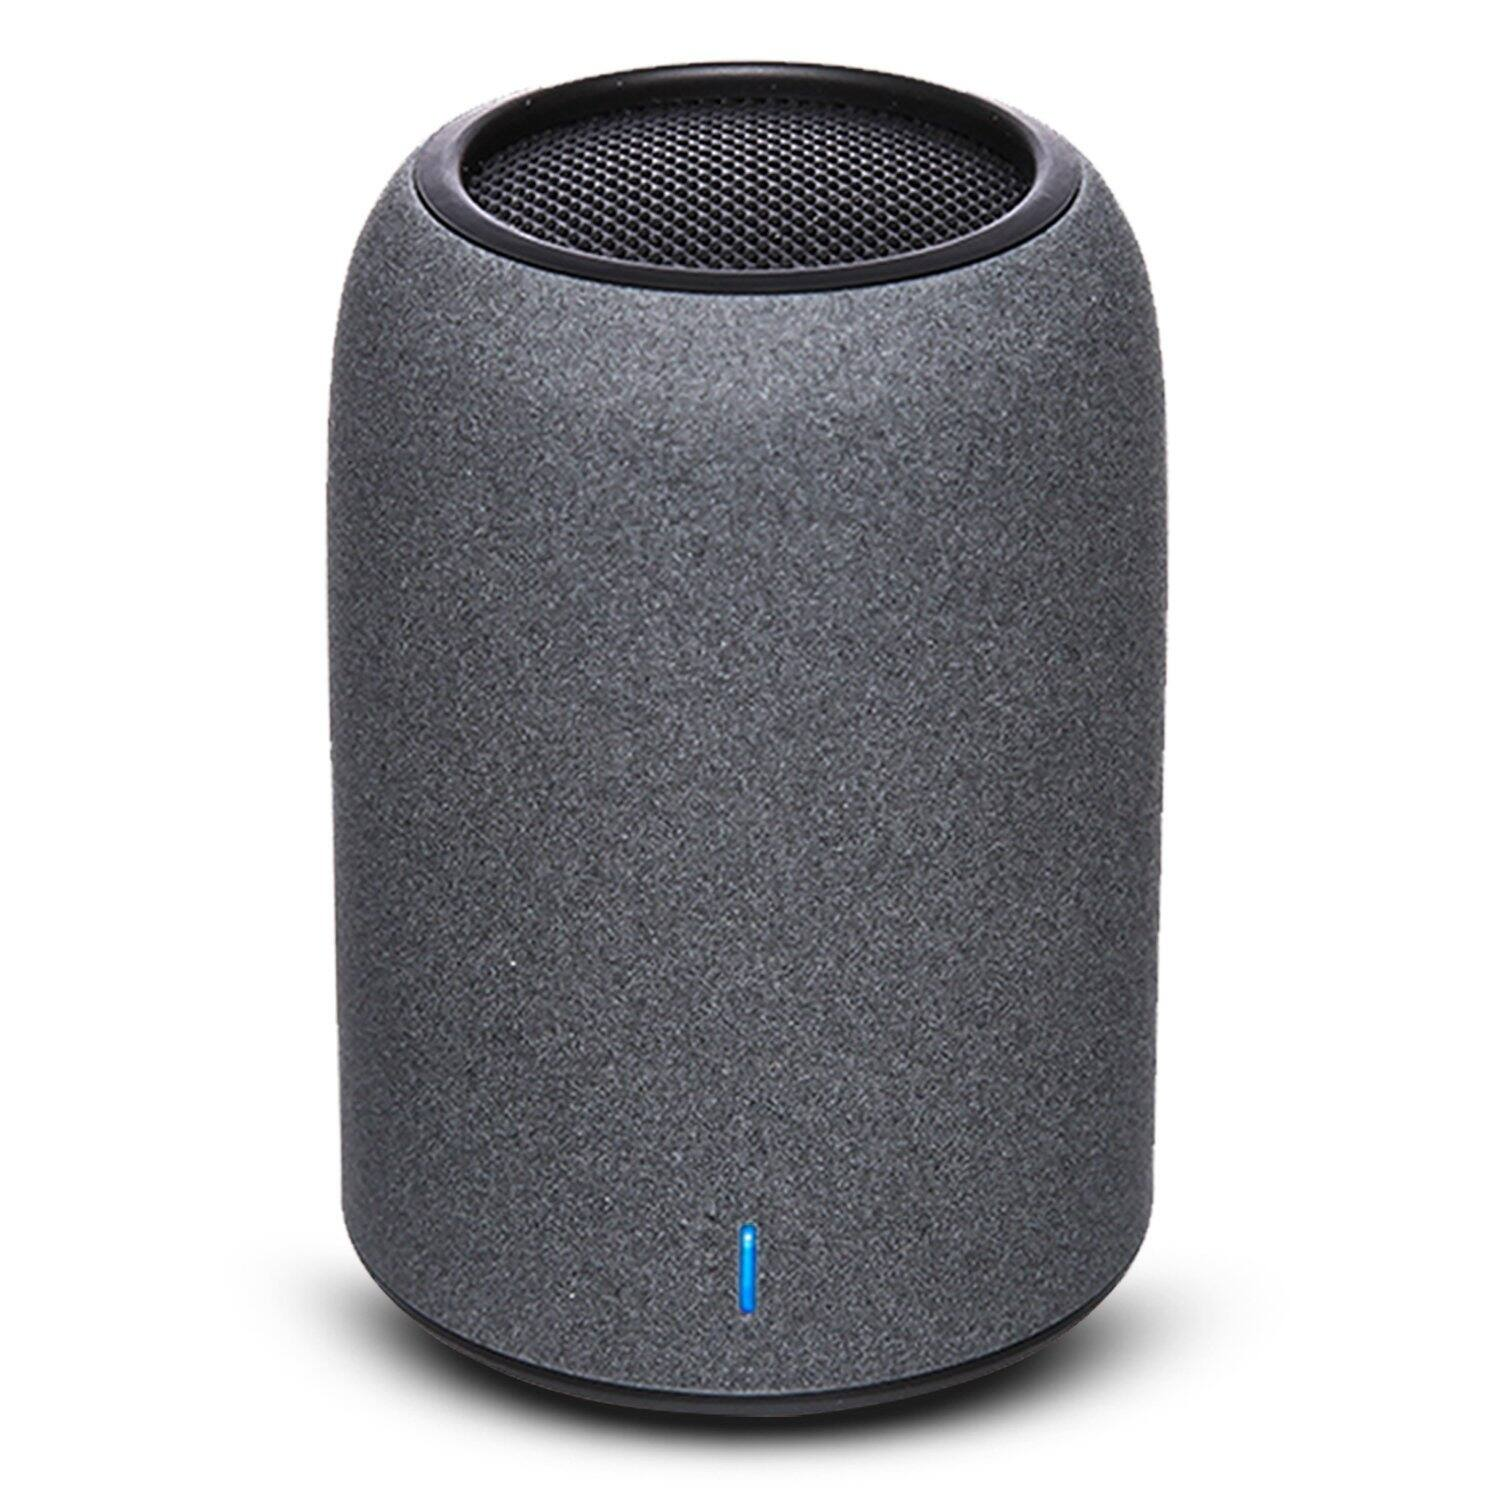 ZENBRE M4 Portable Wireless Speaker Bluetooth 4.2 + Mic, Black Only $6.99